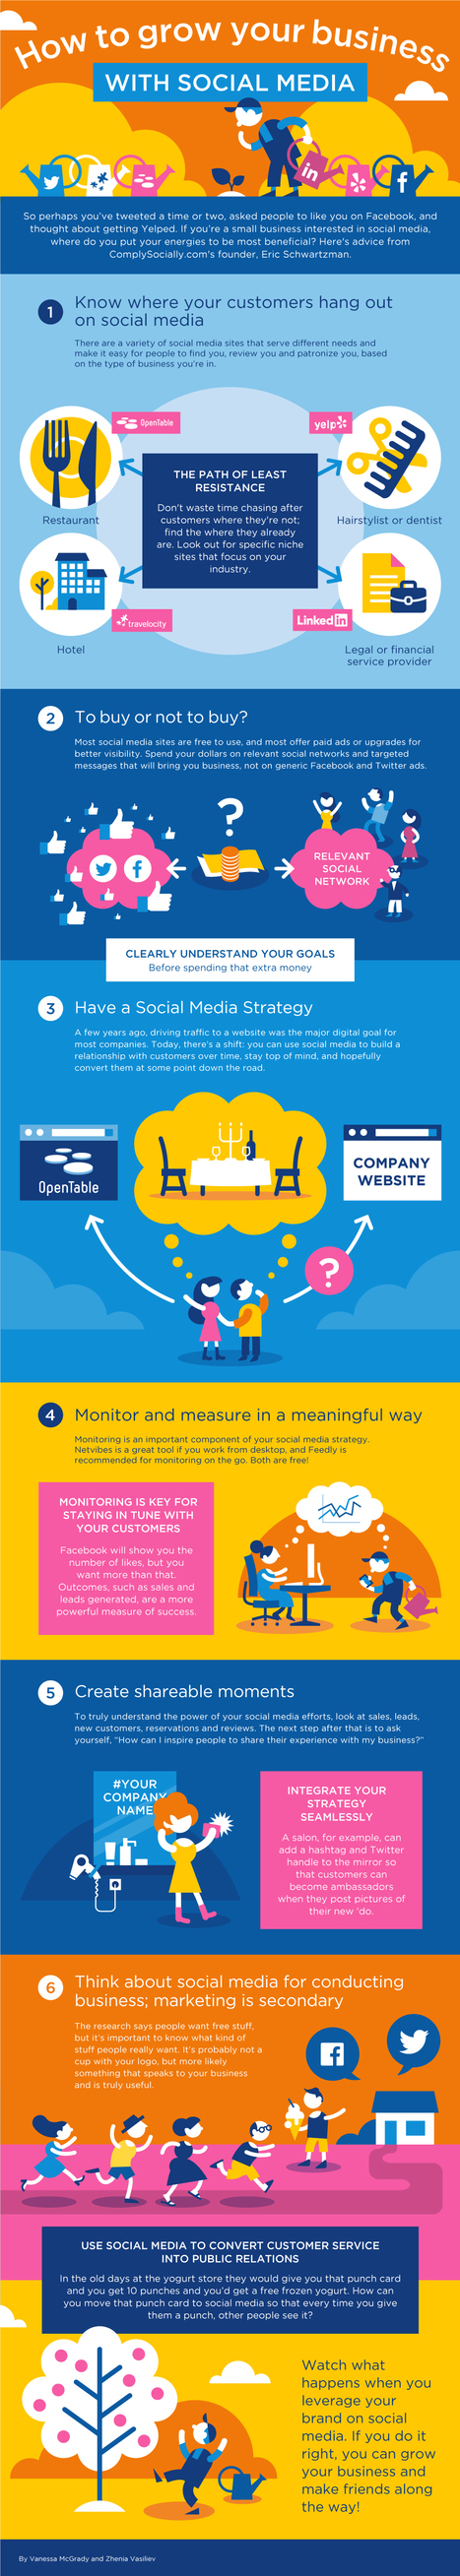 How To Grow Your Business With Social Media - #infographic | MarketingHits | Scoop.it